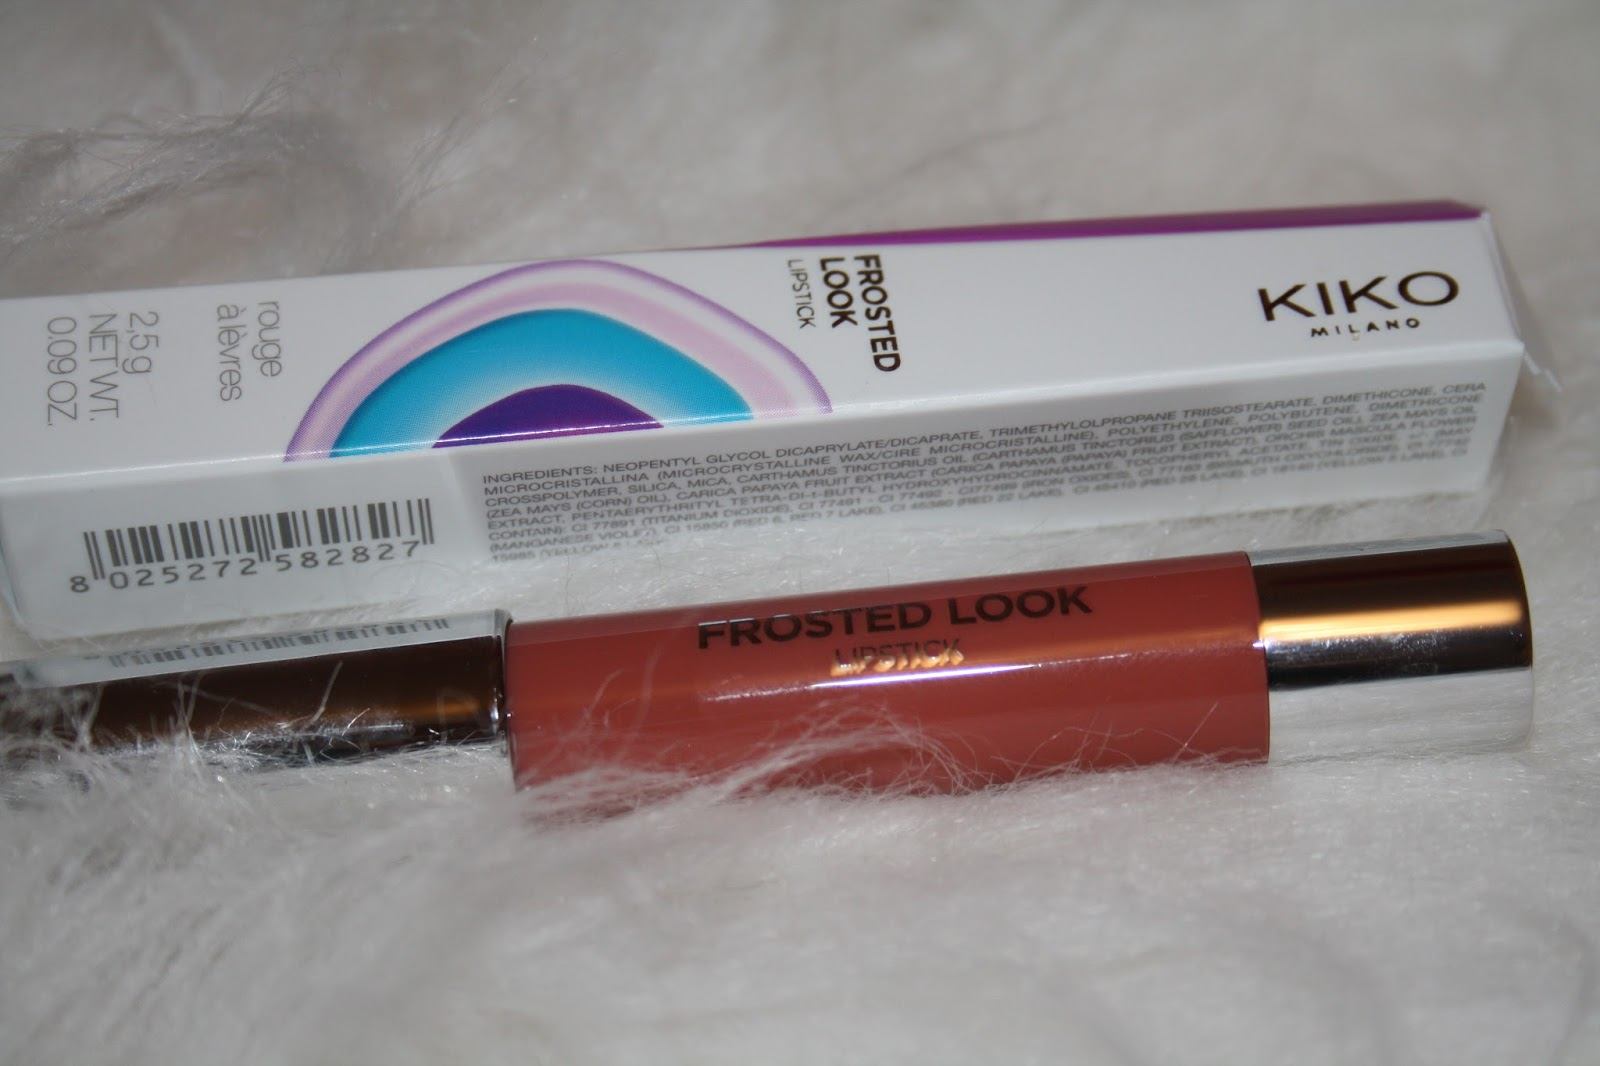 KIKO Frosted Look Lipstick Crayon